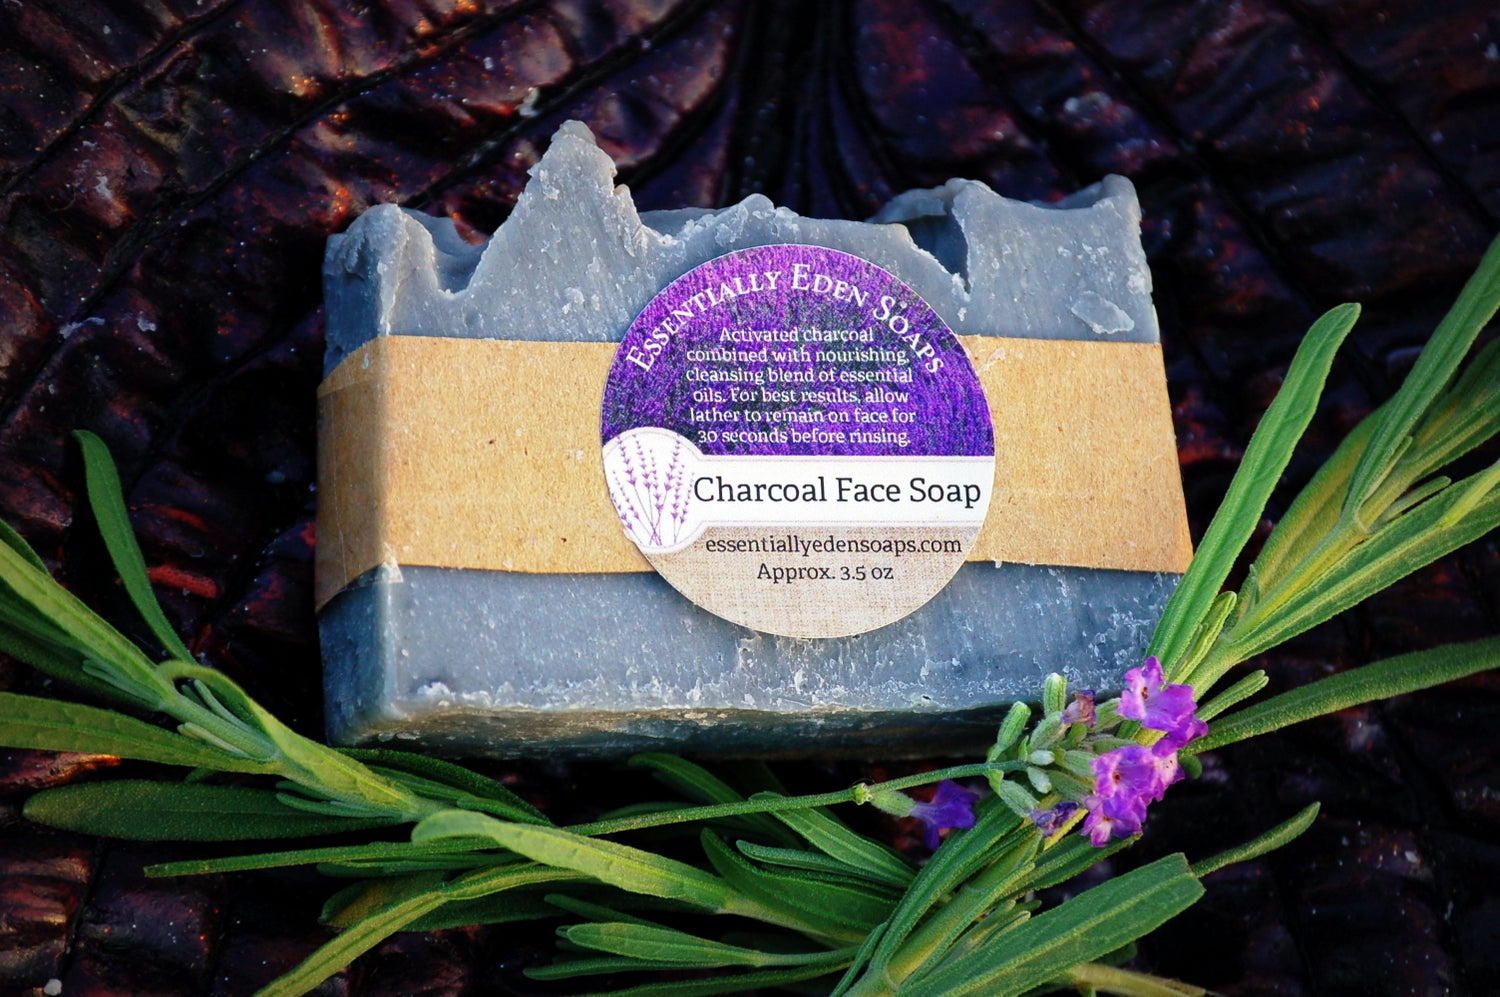 Image of Charcoal Face Soap